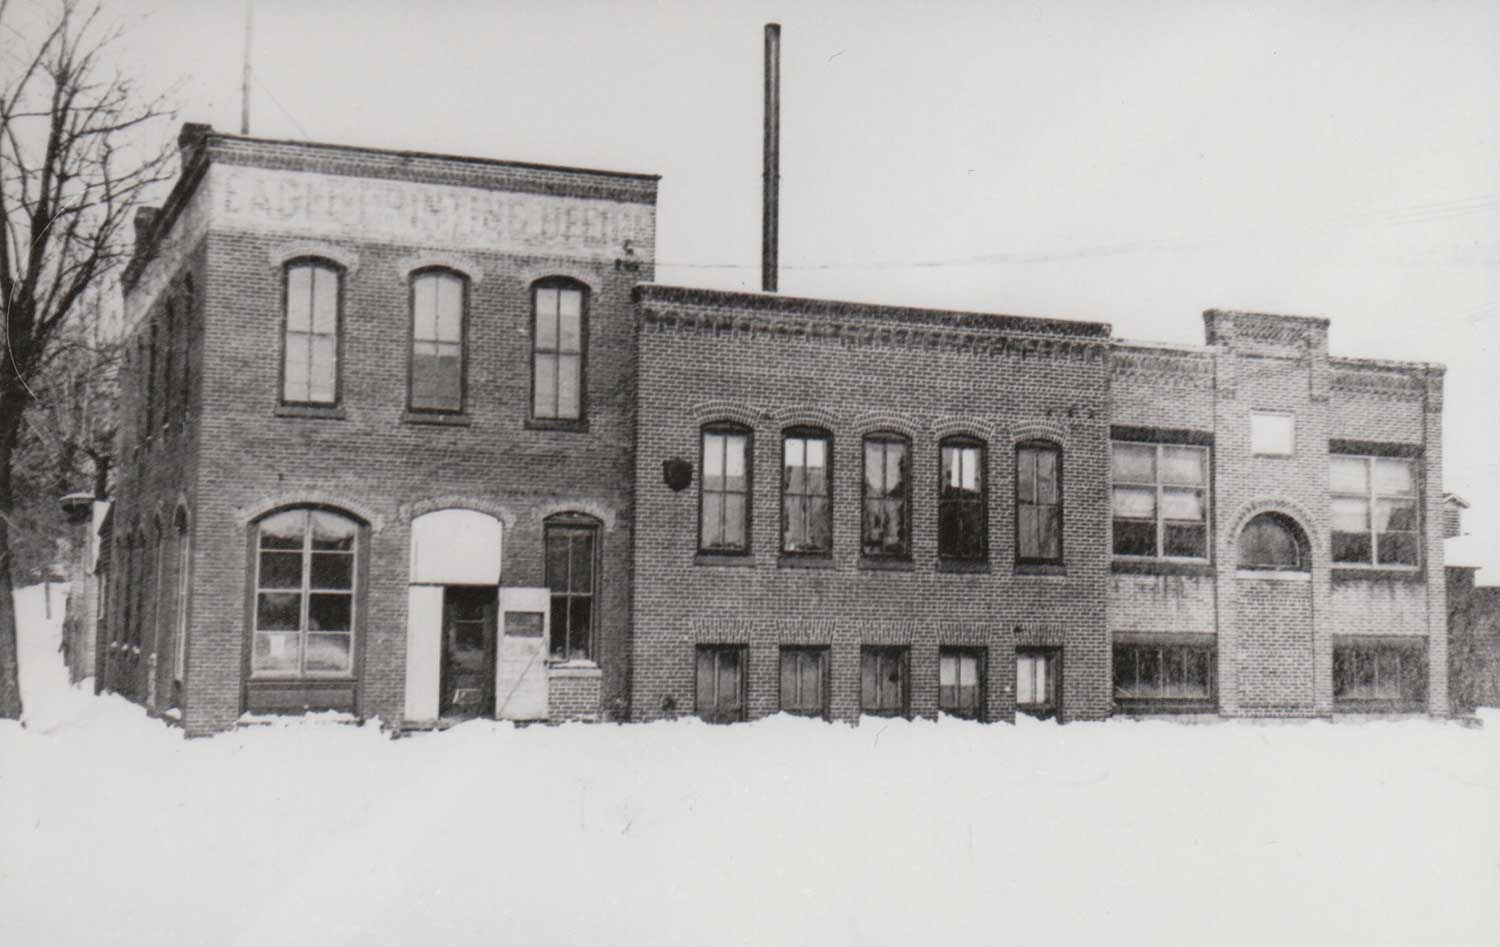 14. Eagle Newspaper Office Building